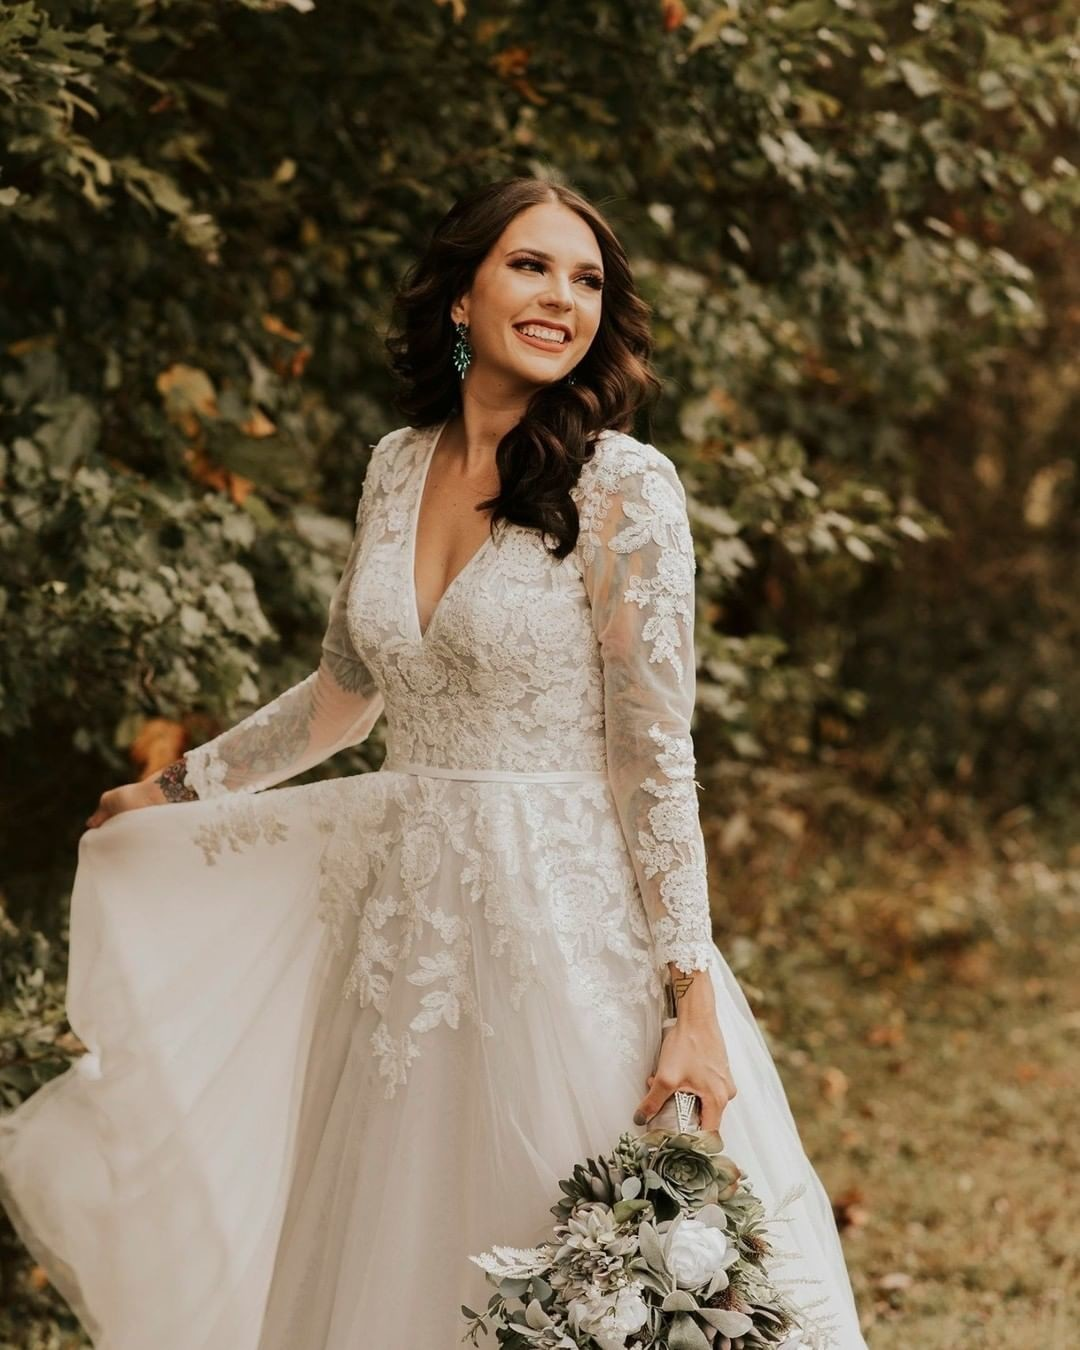 Nothing but heart eyes for this gorgeous fall bride 😍